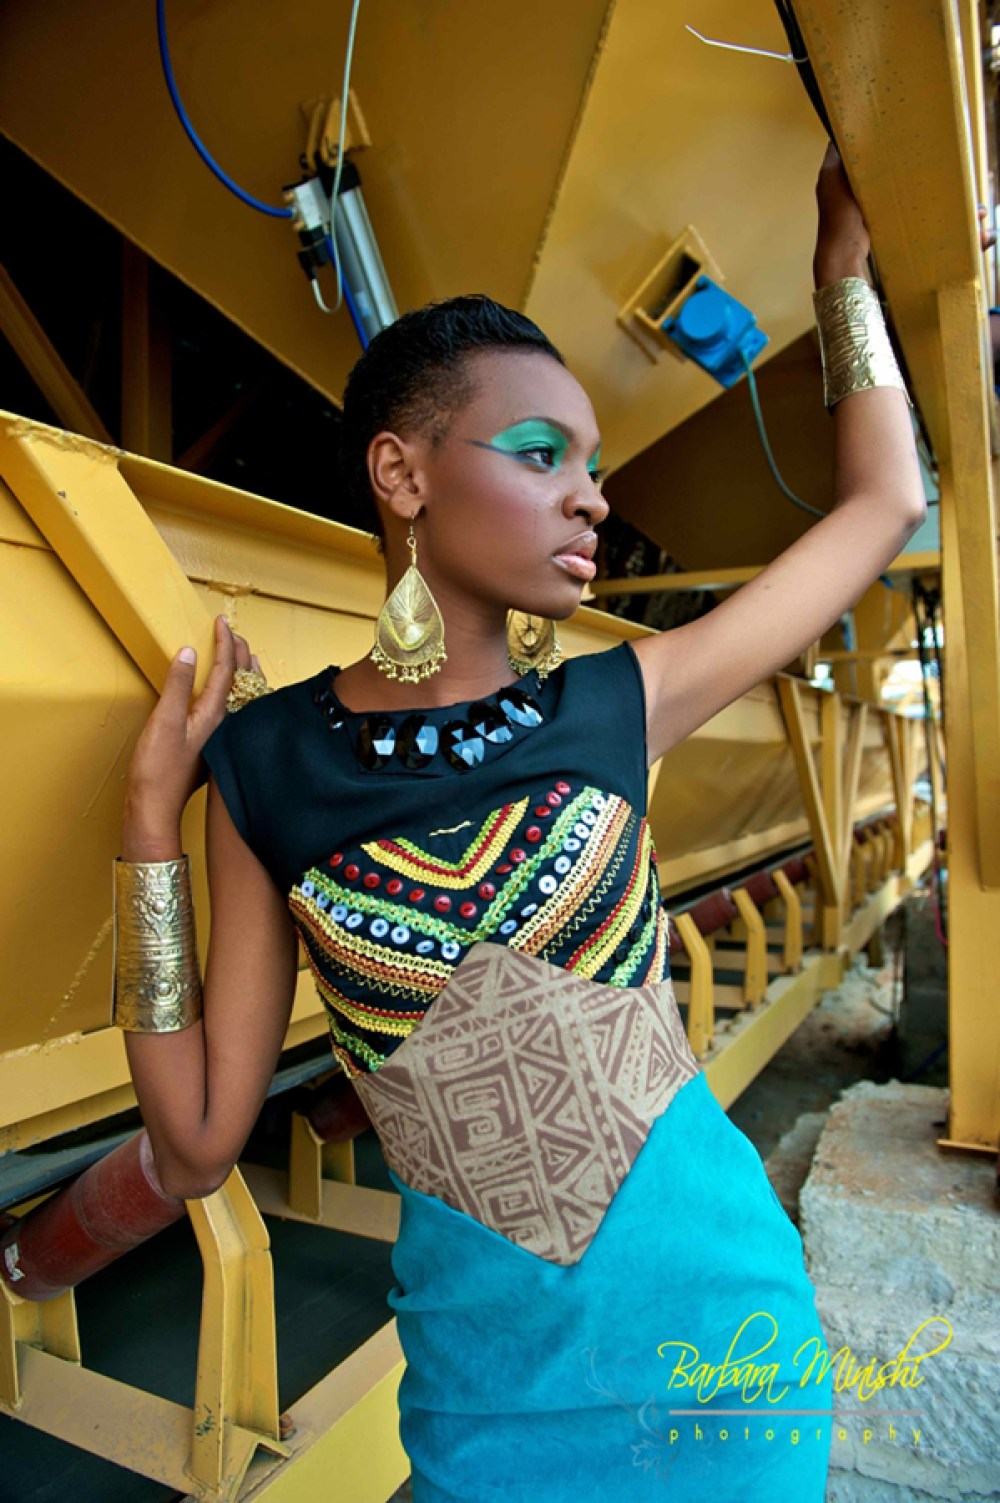 Pioneering the local make-up industry: Suzie Wokabi II #MakeUpArtist #TDSvoices